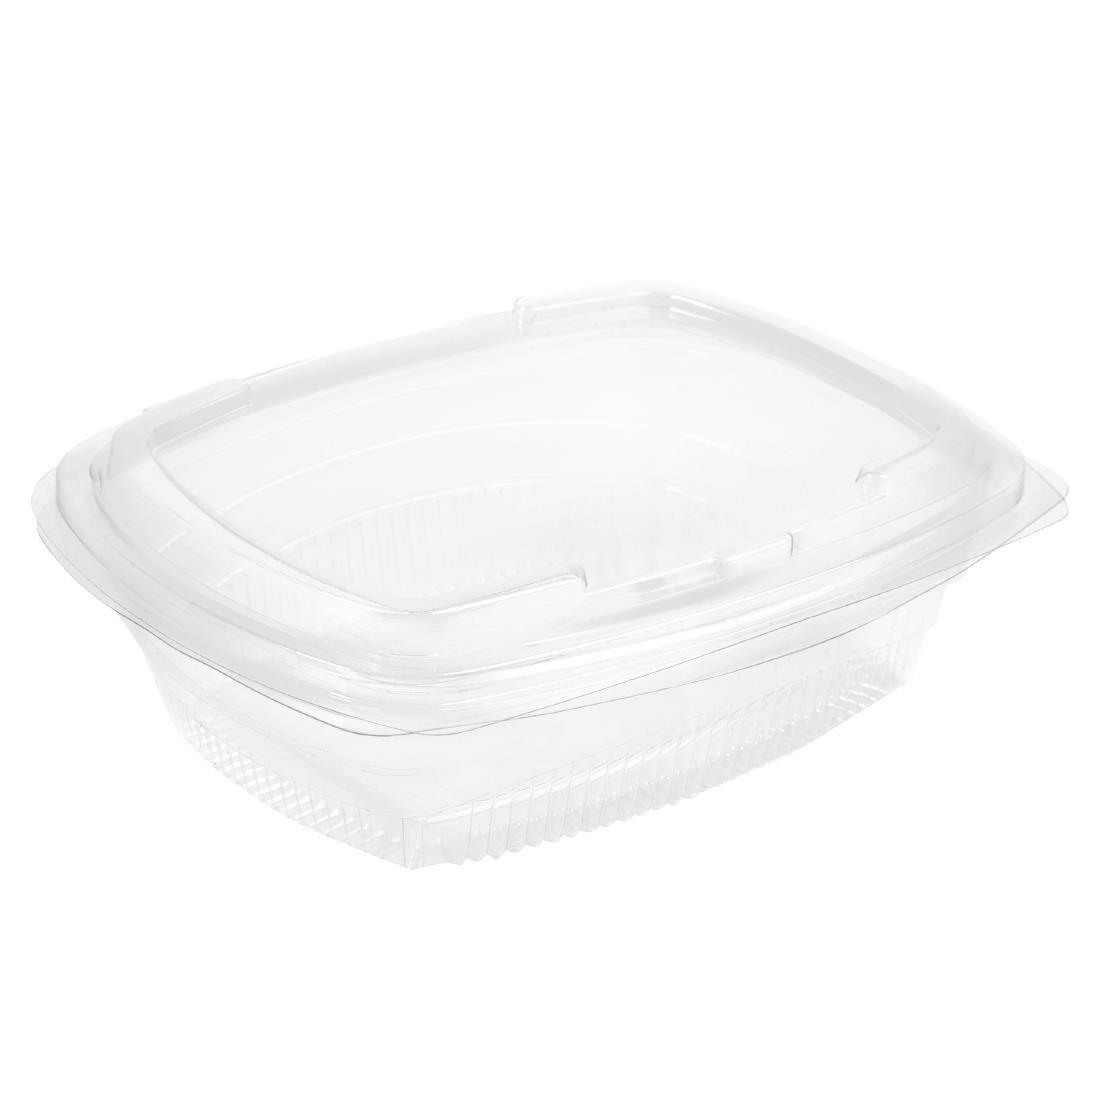 Faerch Fresco Recyclable Deli Containers With Lid 750ml / 26oz